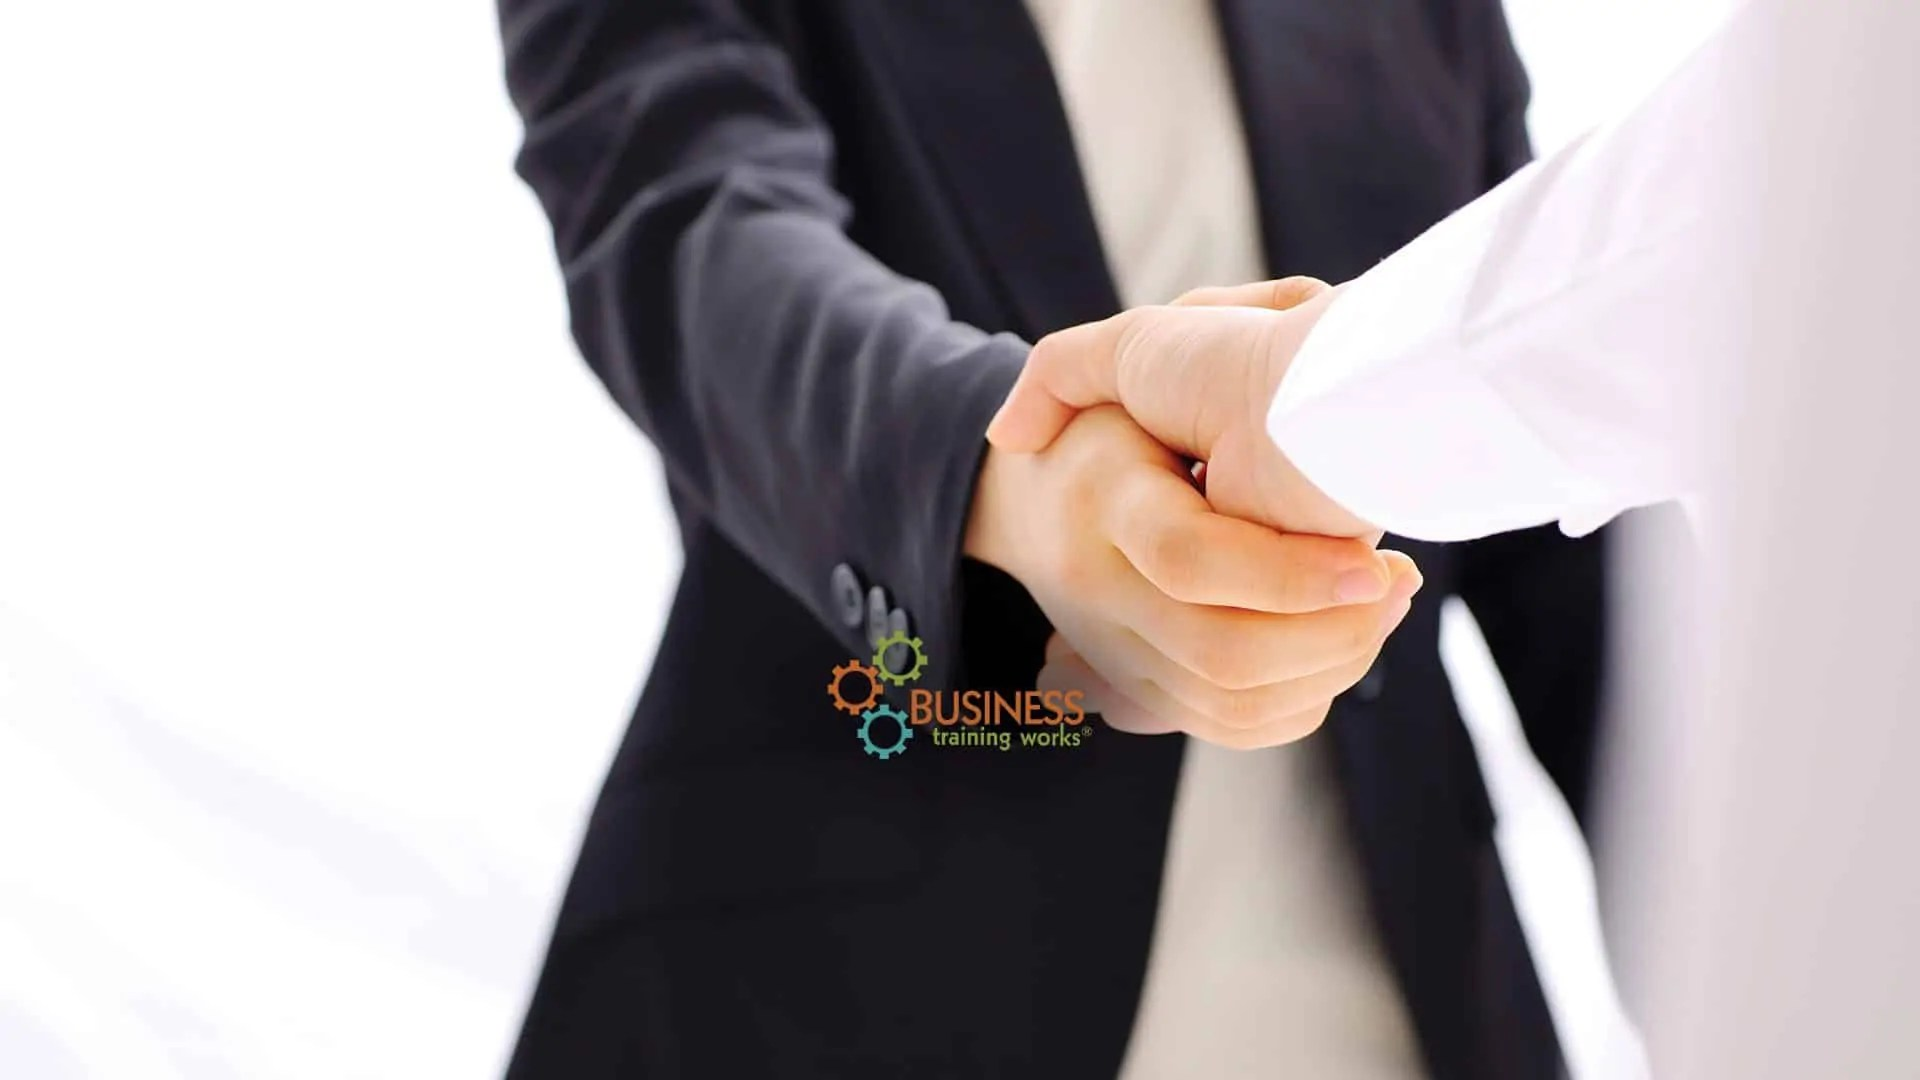 How Can We Help You with Business Etiquette?